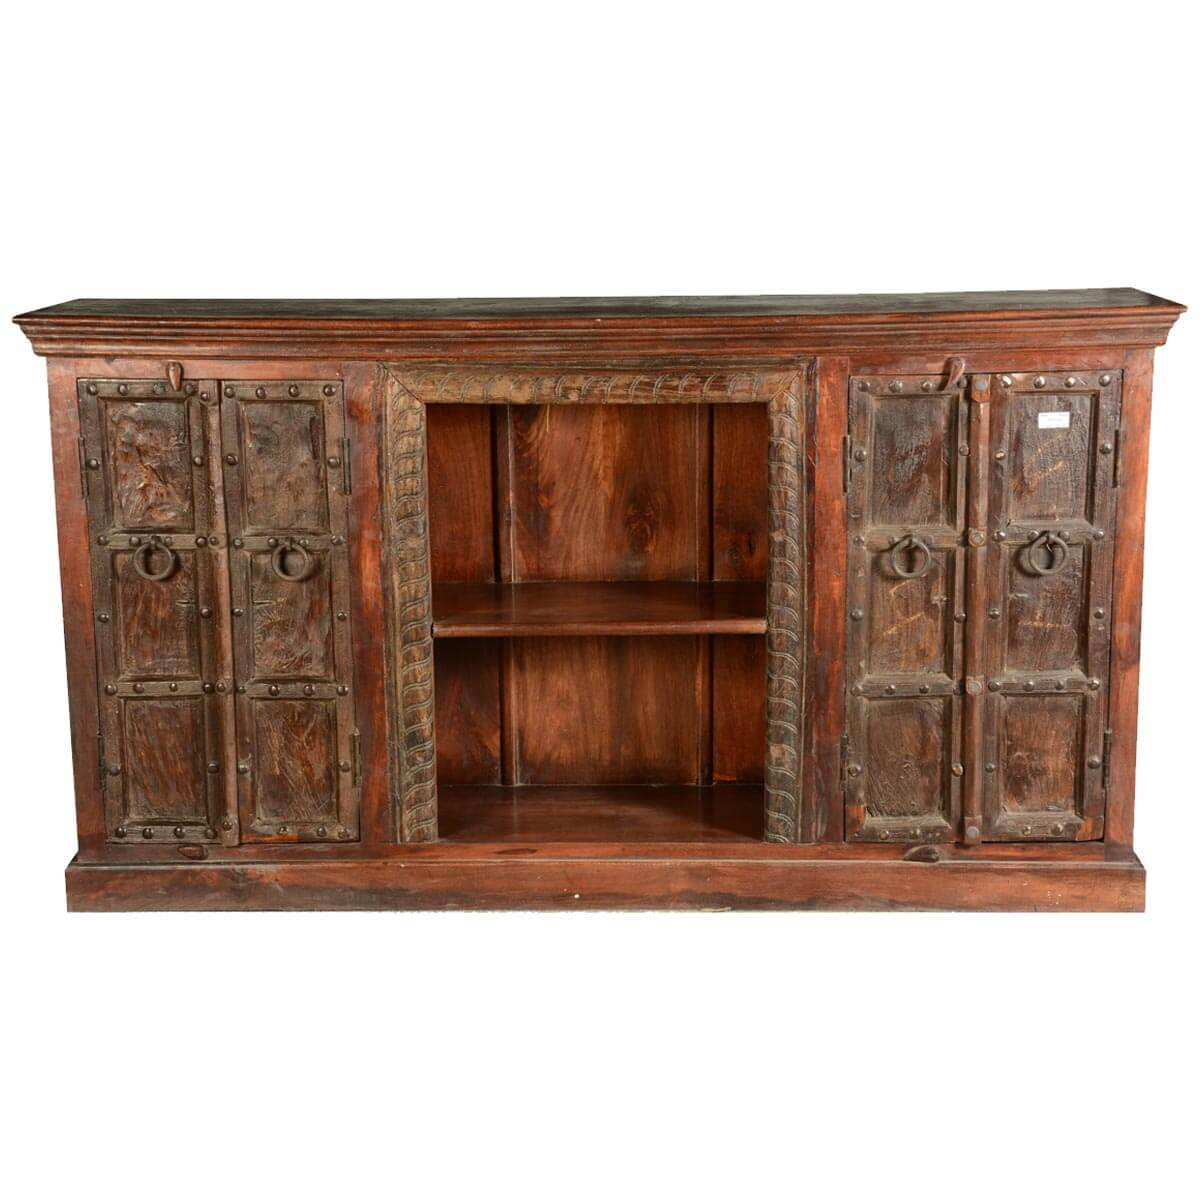 Reclaimed Wood Sideboard ~ Gothic traditional reclaimed wood front display shelves